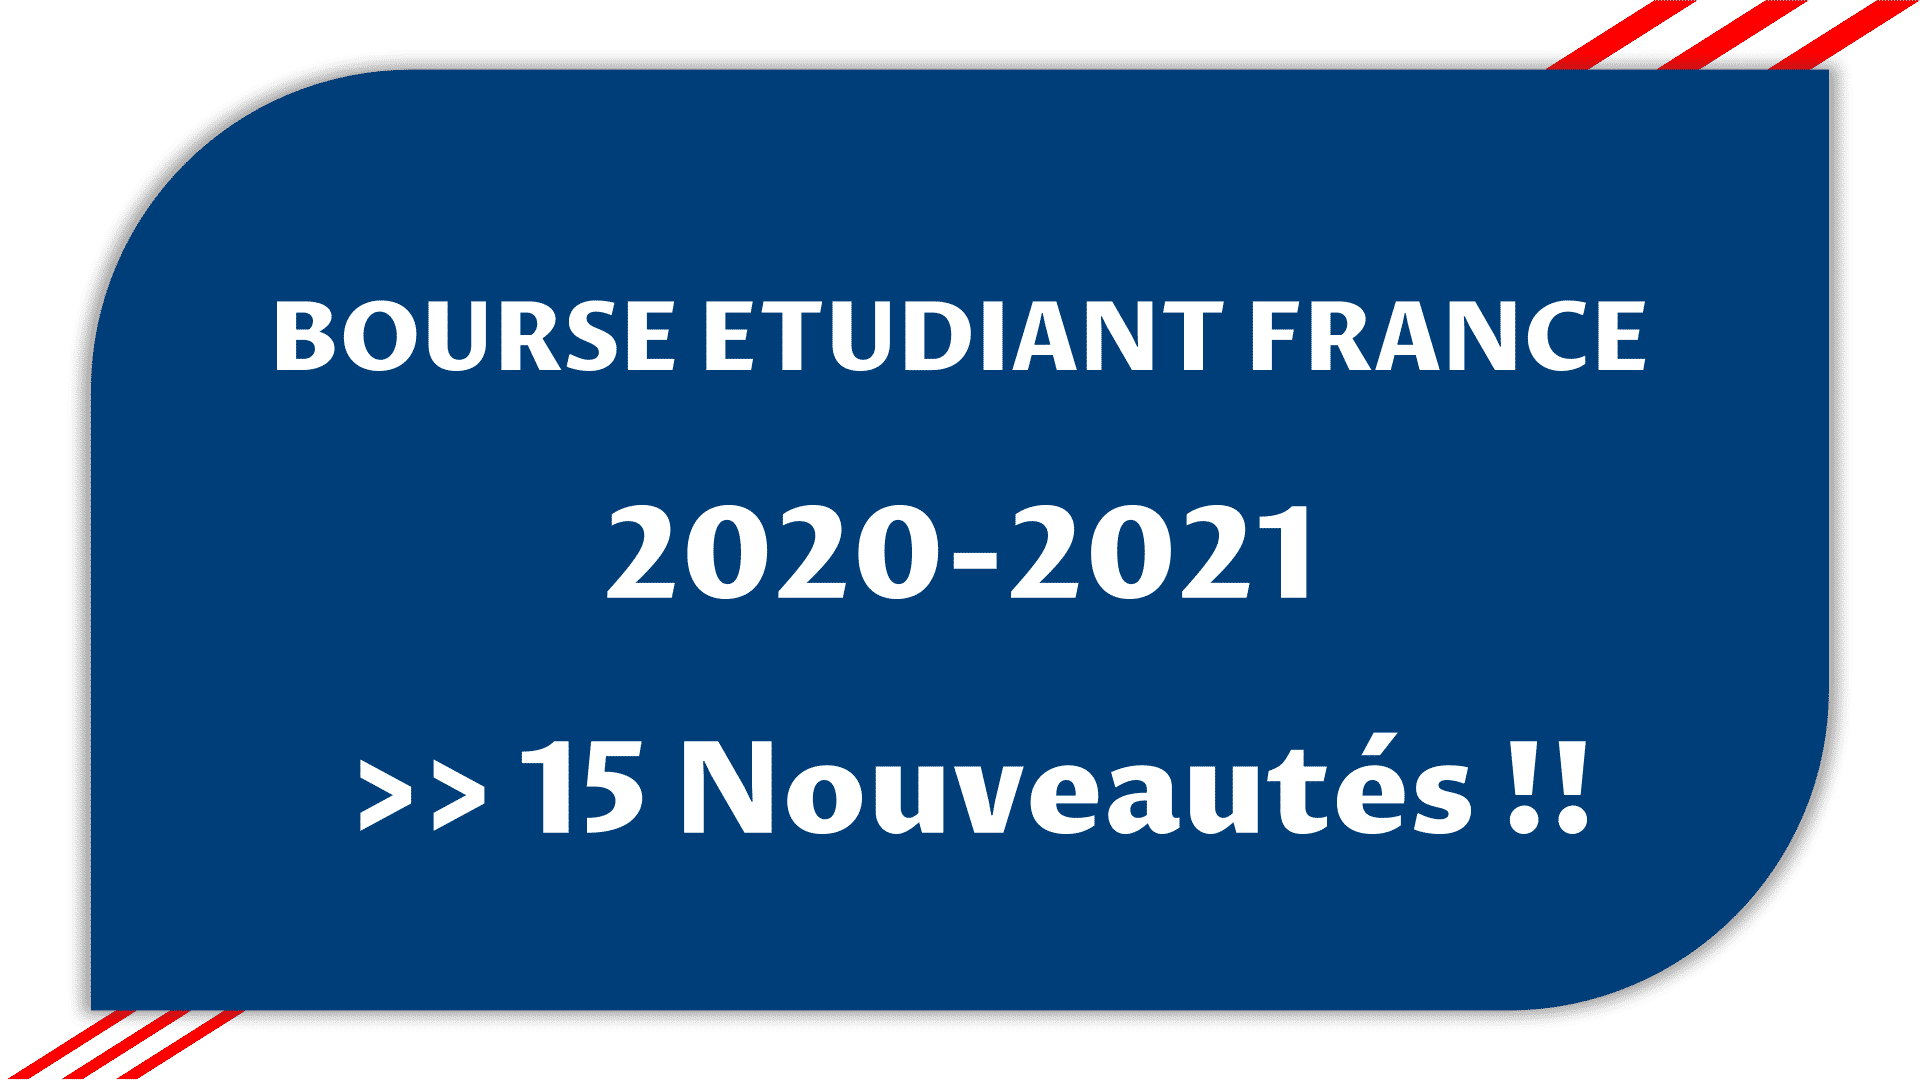 bourse etudiant france 2020